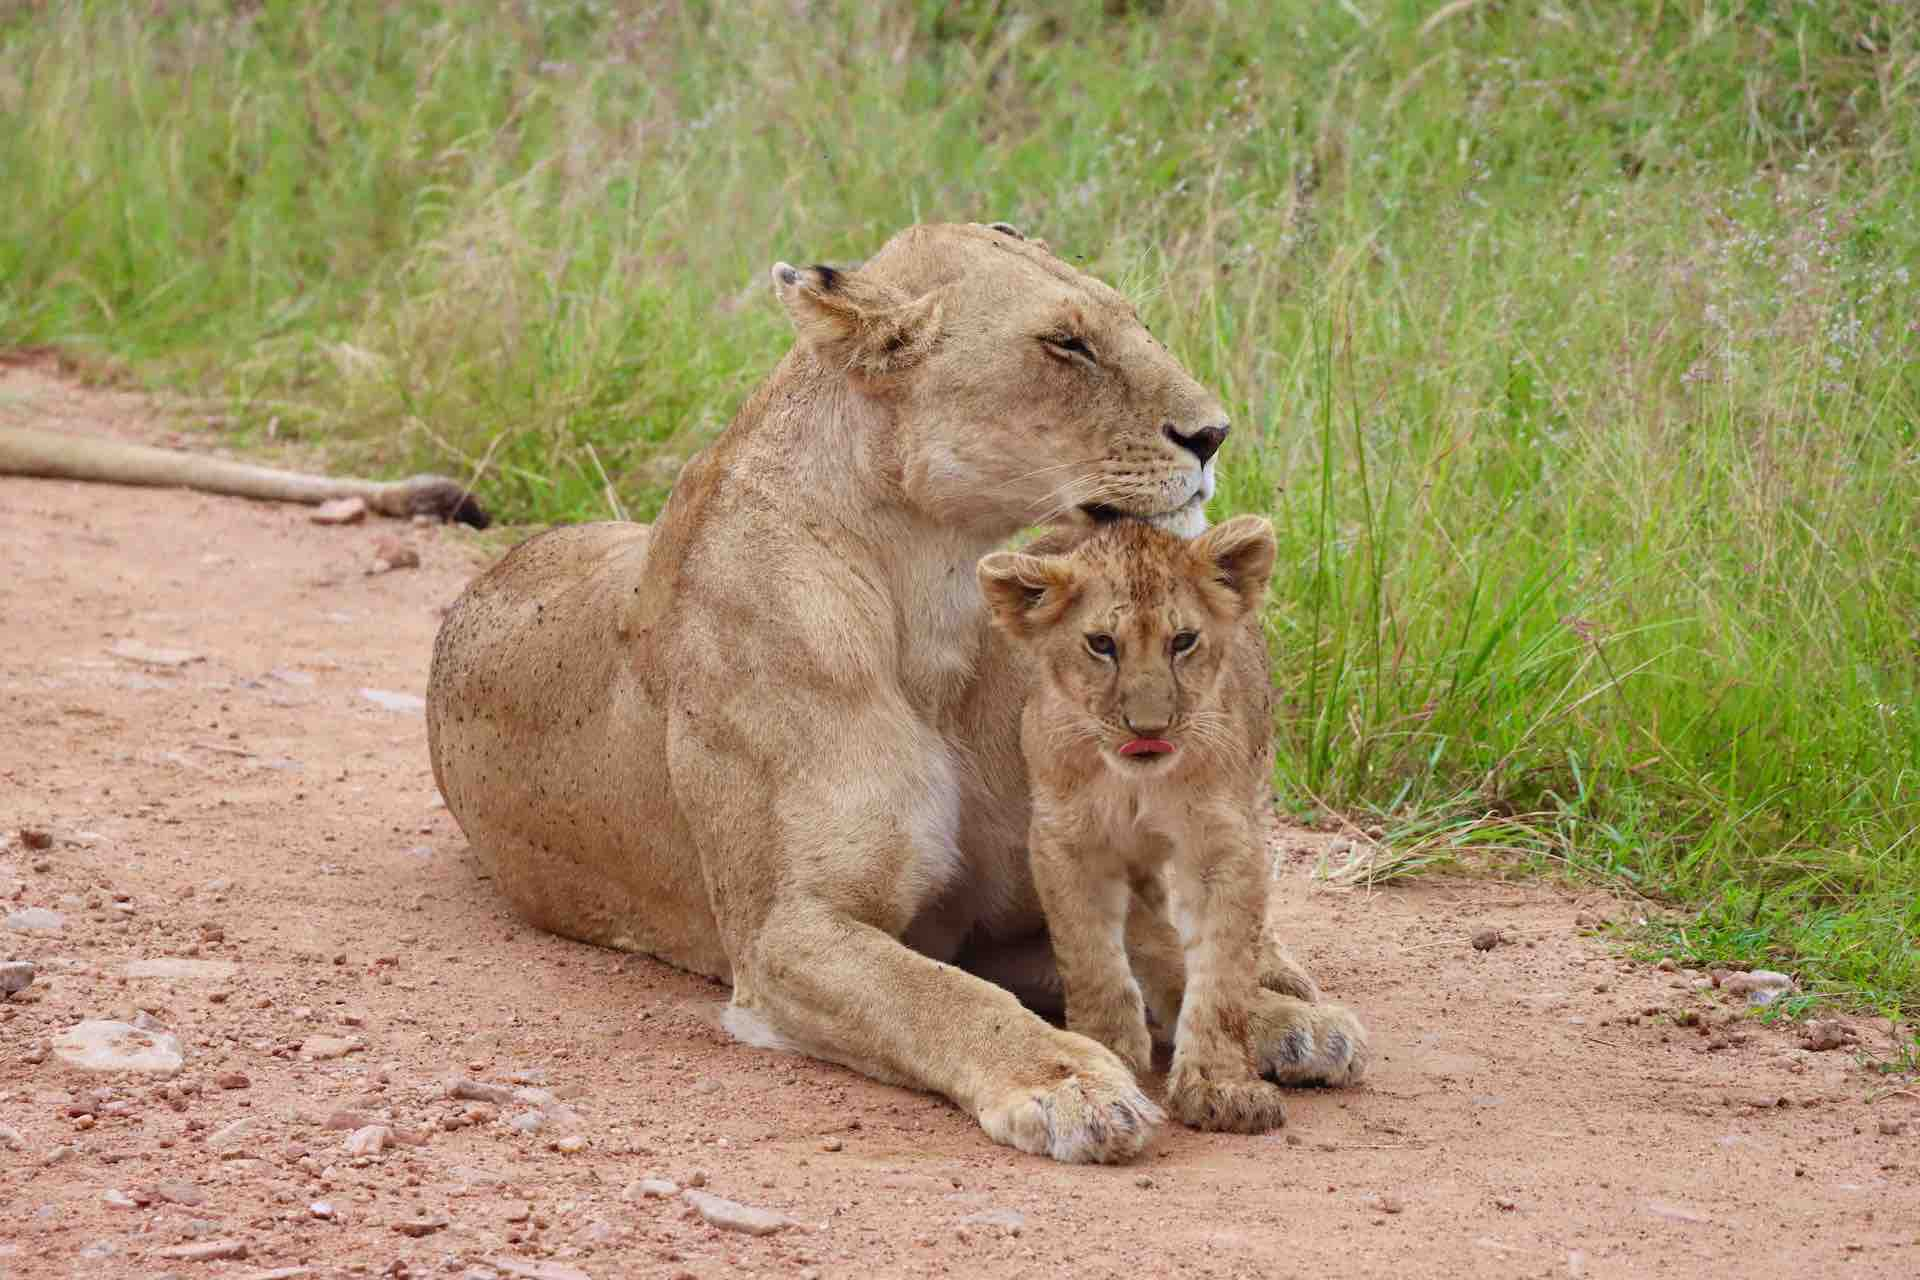 Lion cub_with mother lion in Maasai Mara Game Reserve in Kenya Africa_AOT